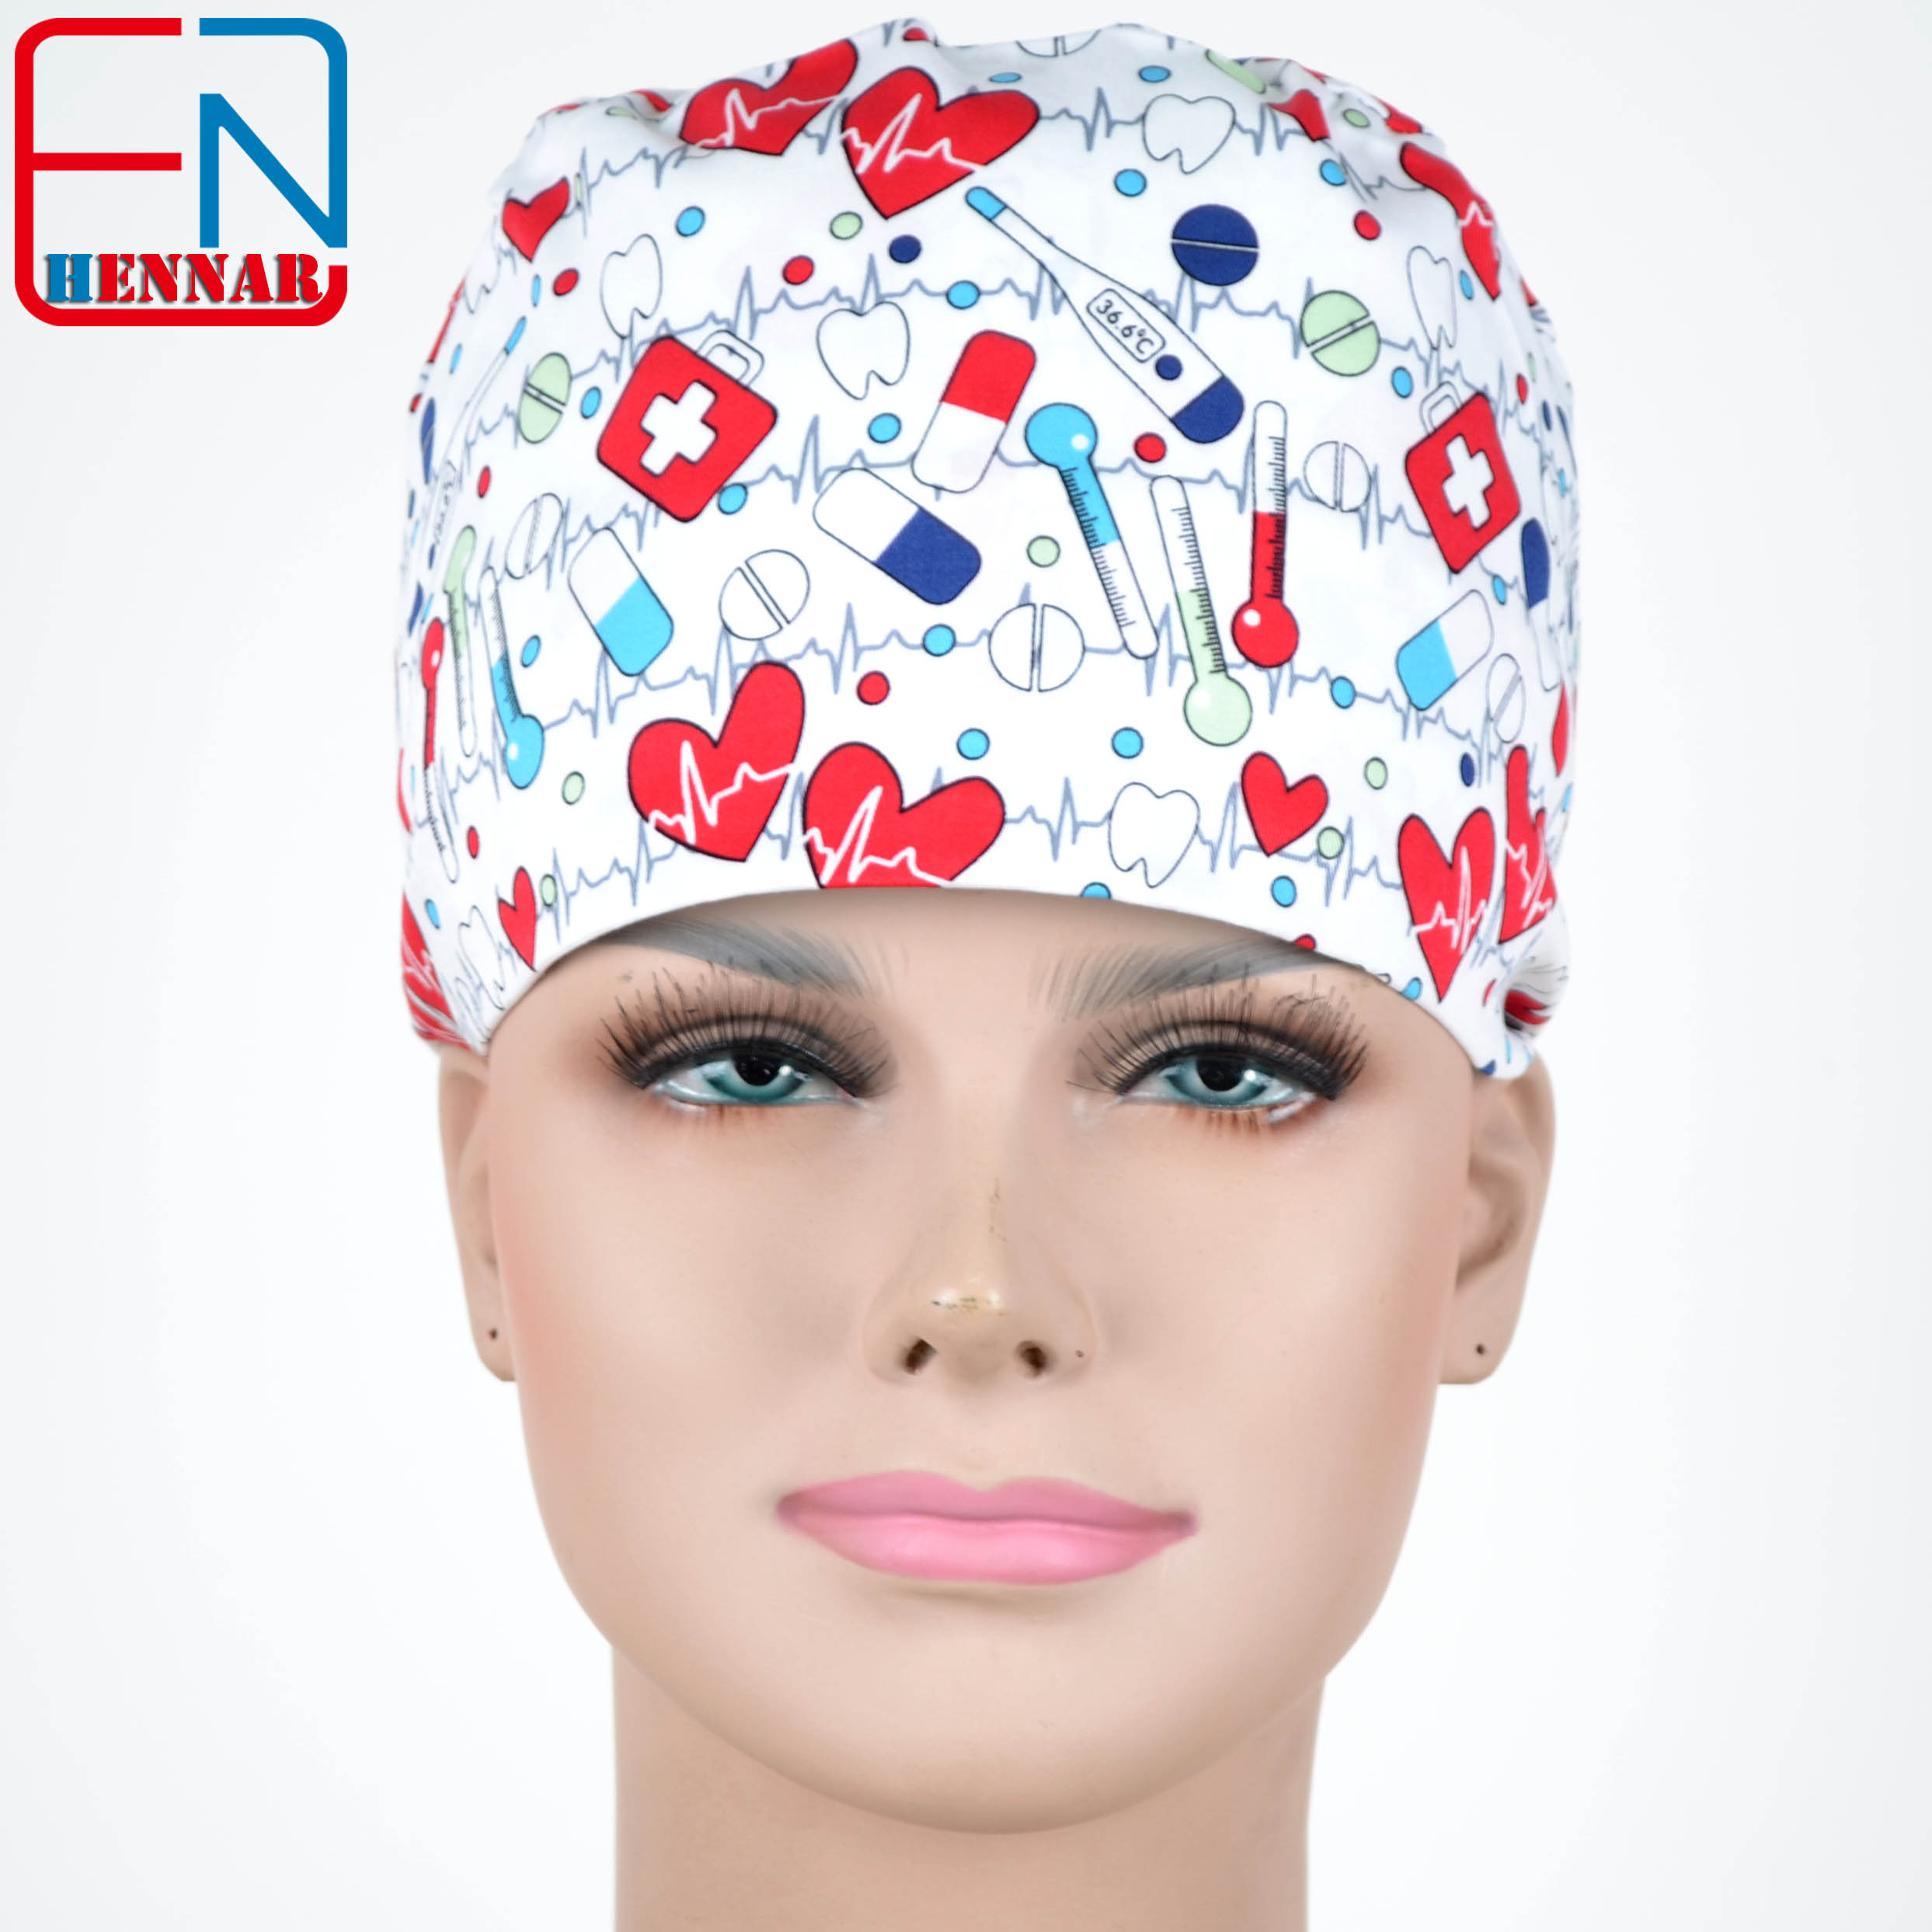 Hennar  Scrub Caps Masks 100% Cotton Adjustable Elastic Bands Surgical Scrub Caps Medical Hospital Doctor Headwear Cap Mask